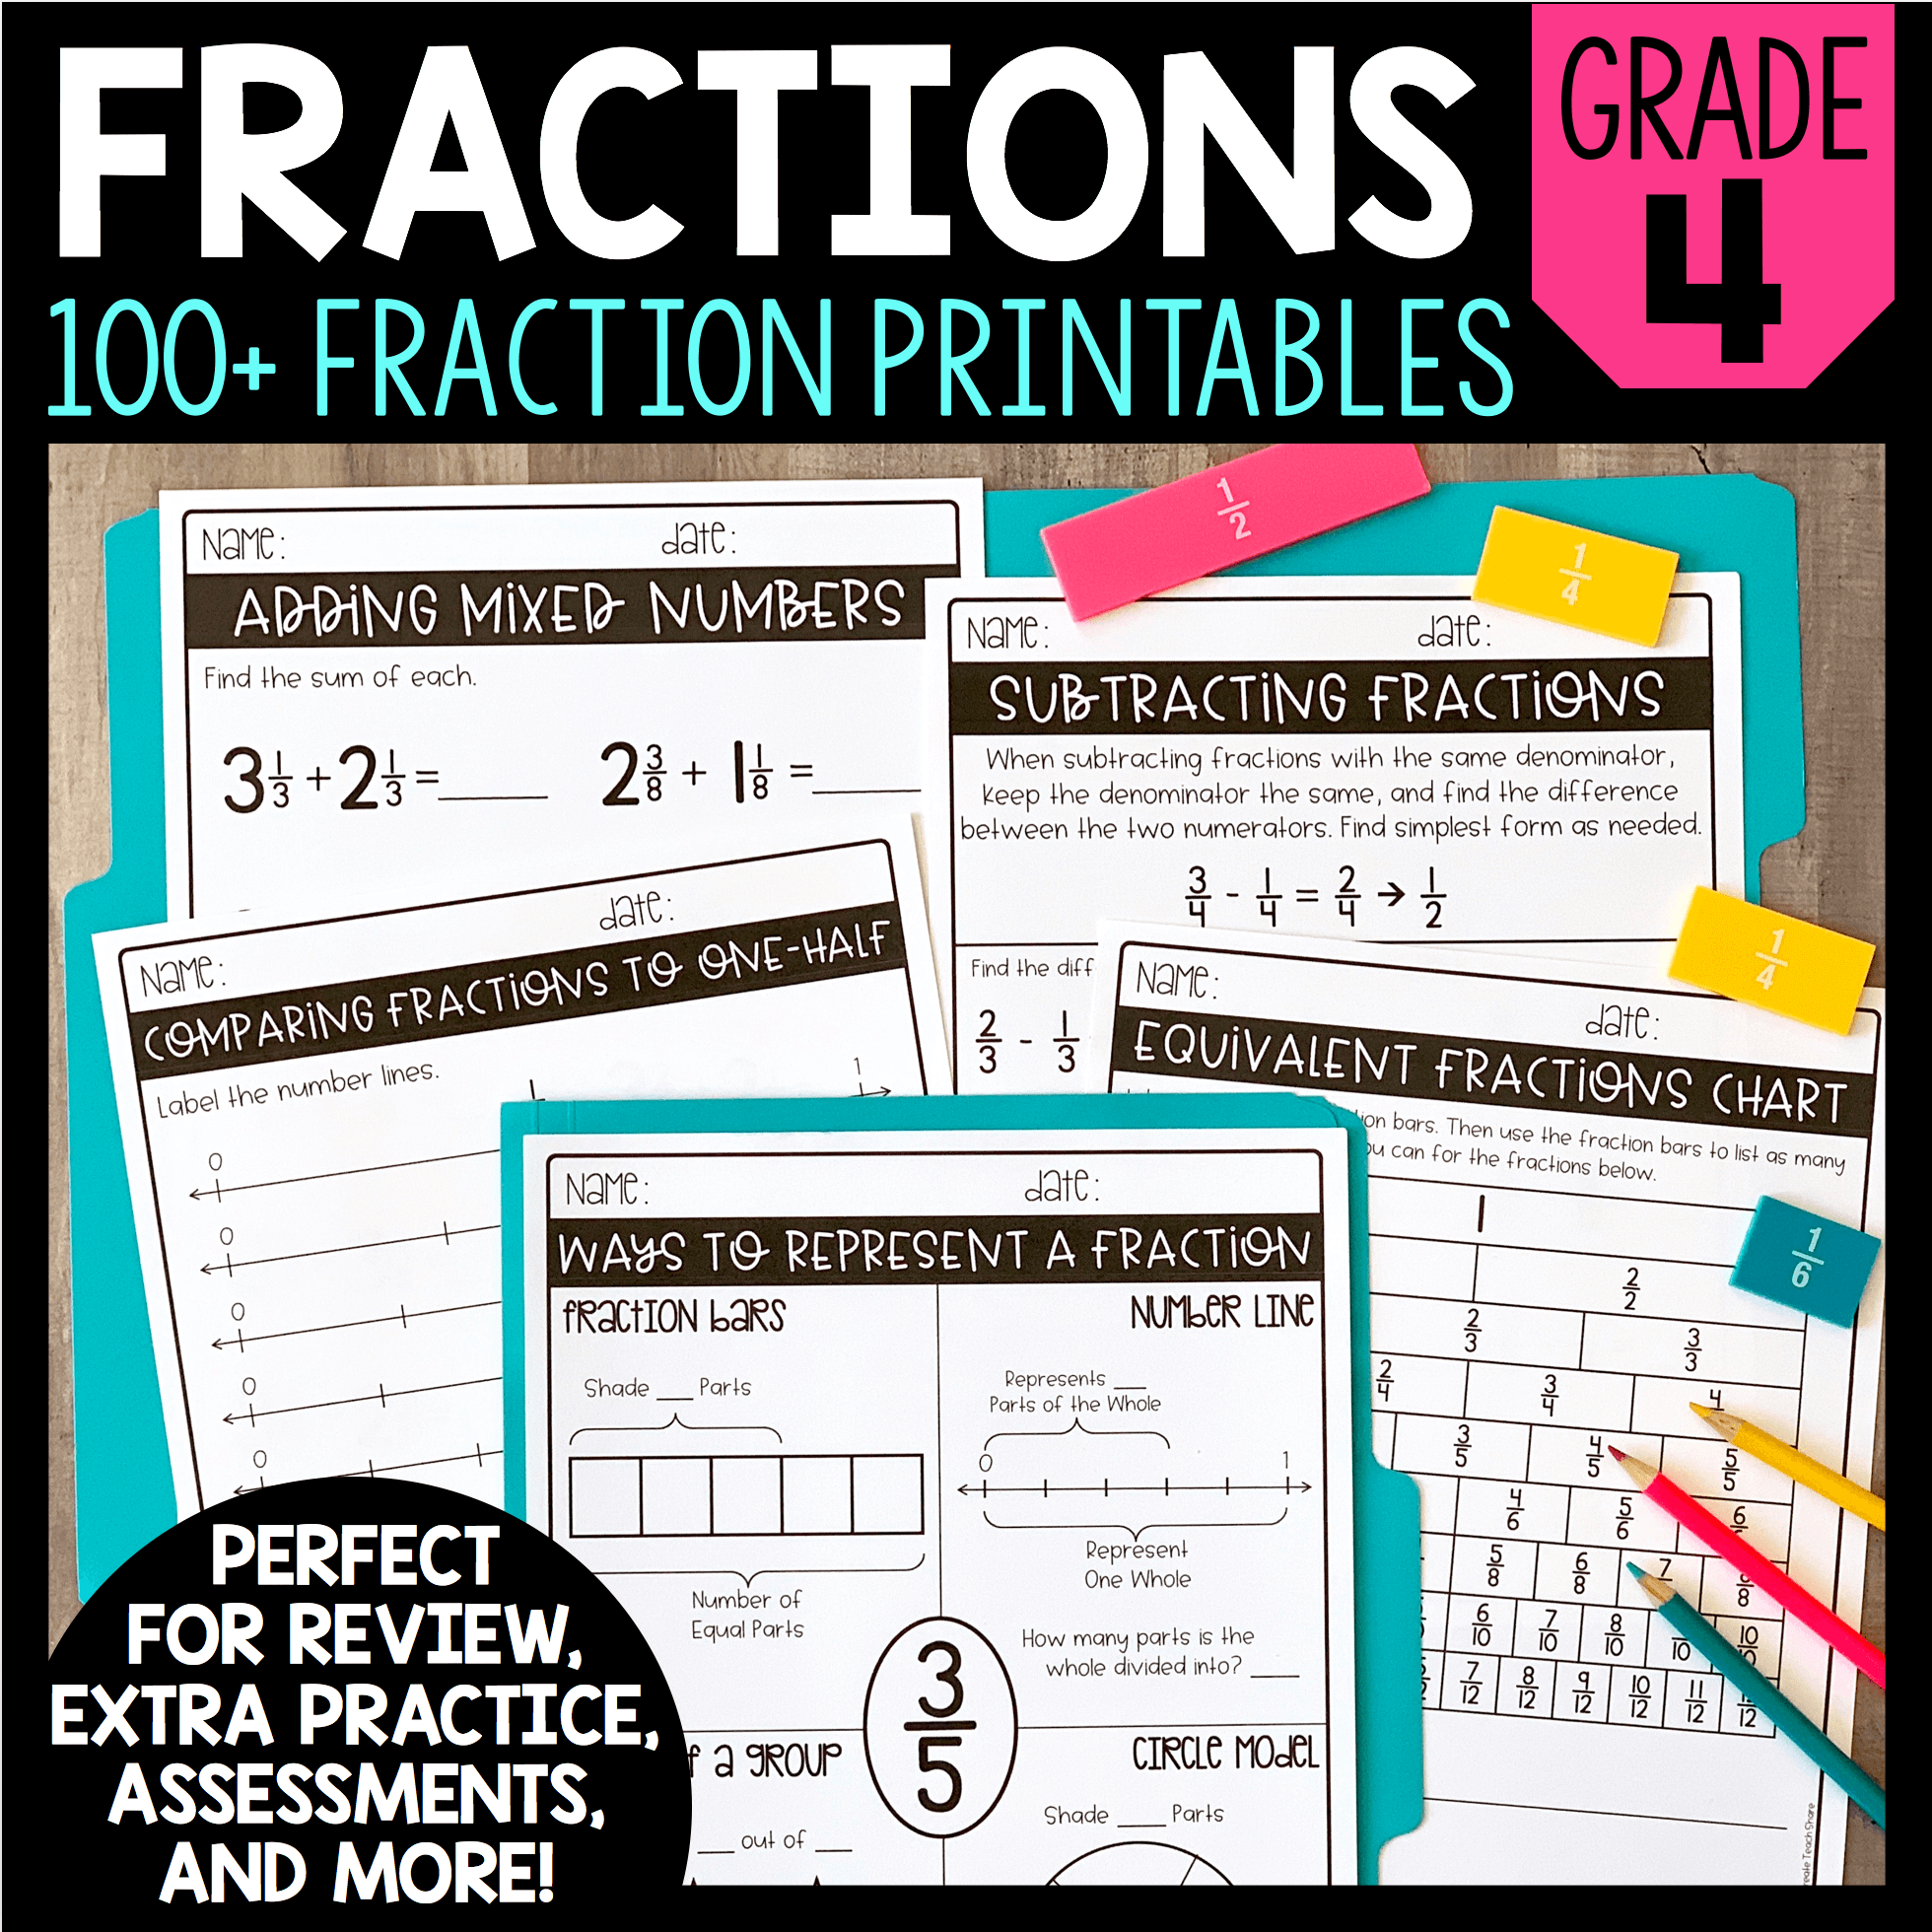 80 Fraction Printables With Images